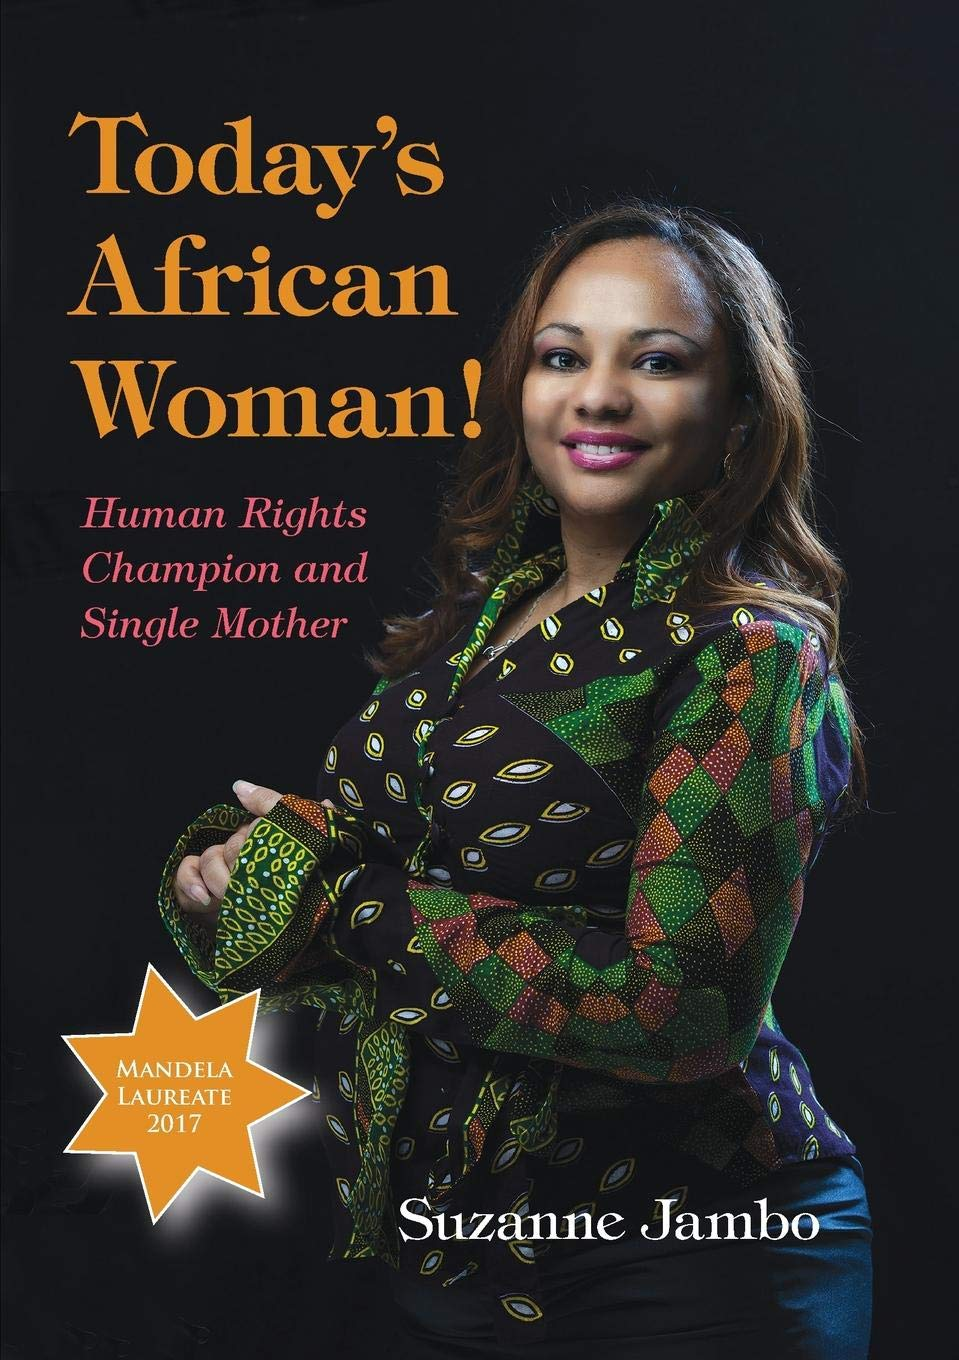 Today's African Woman!: Human Rights Champion and Single Mother Paperback – February 7, 2018 Suzanne Jambo Africa World Books Pty Ltd 0987614193 Mandela Ubuntu 2017 Laureate